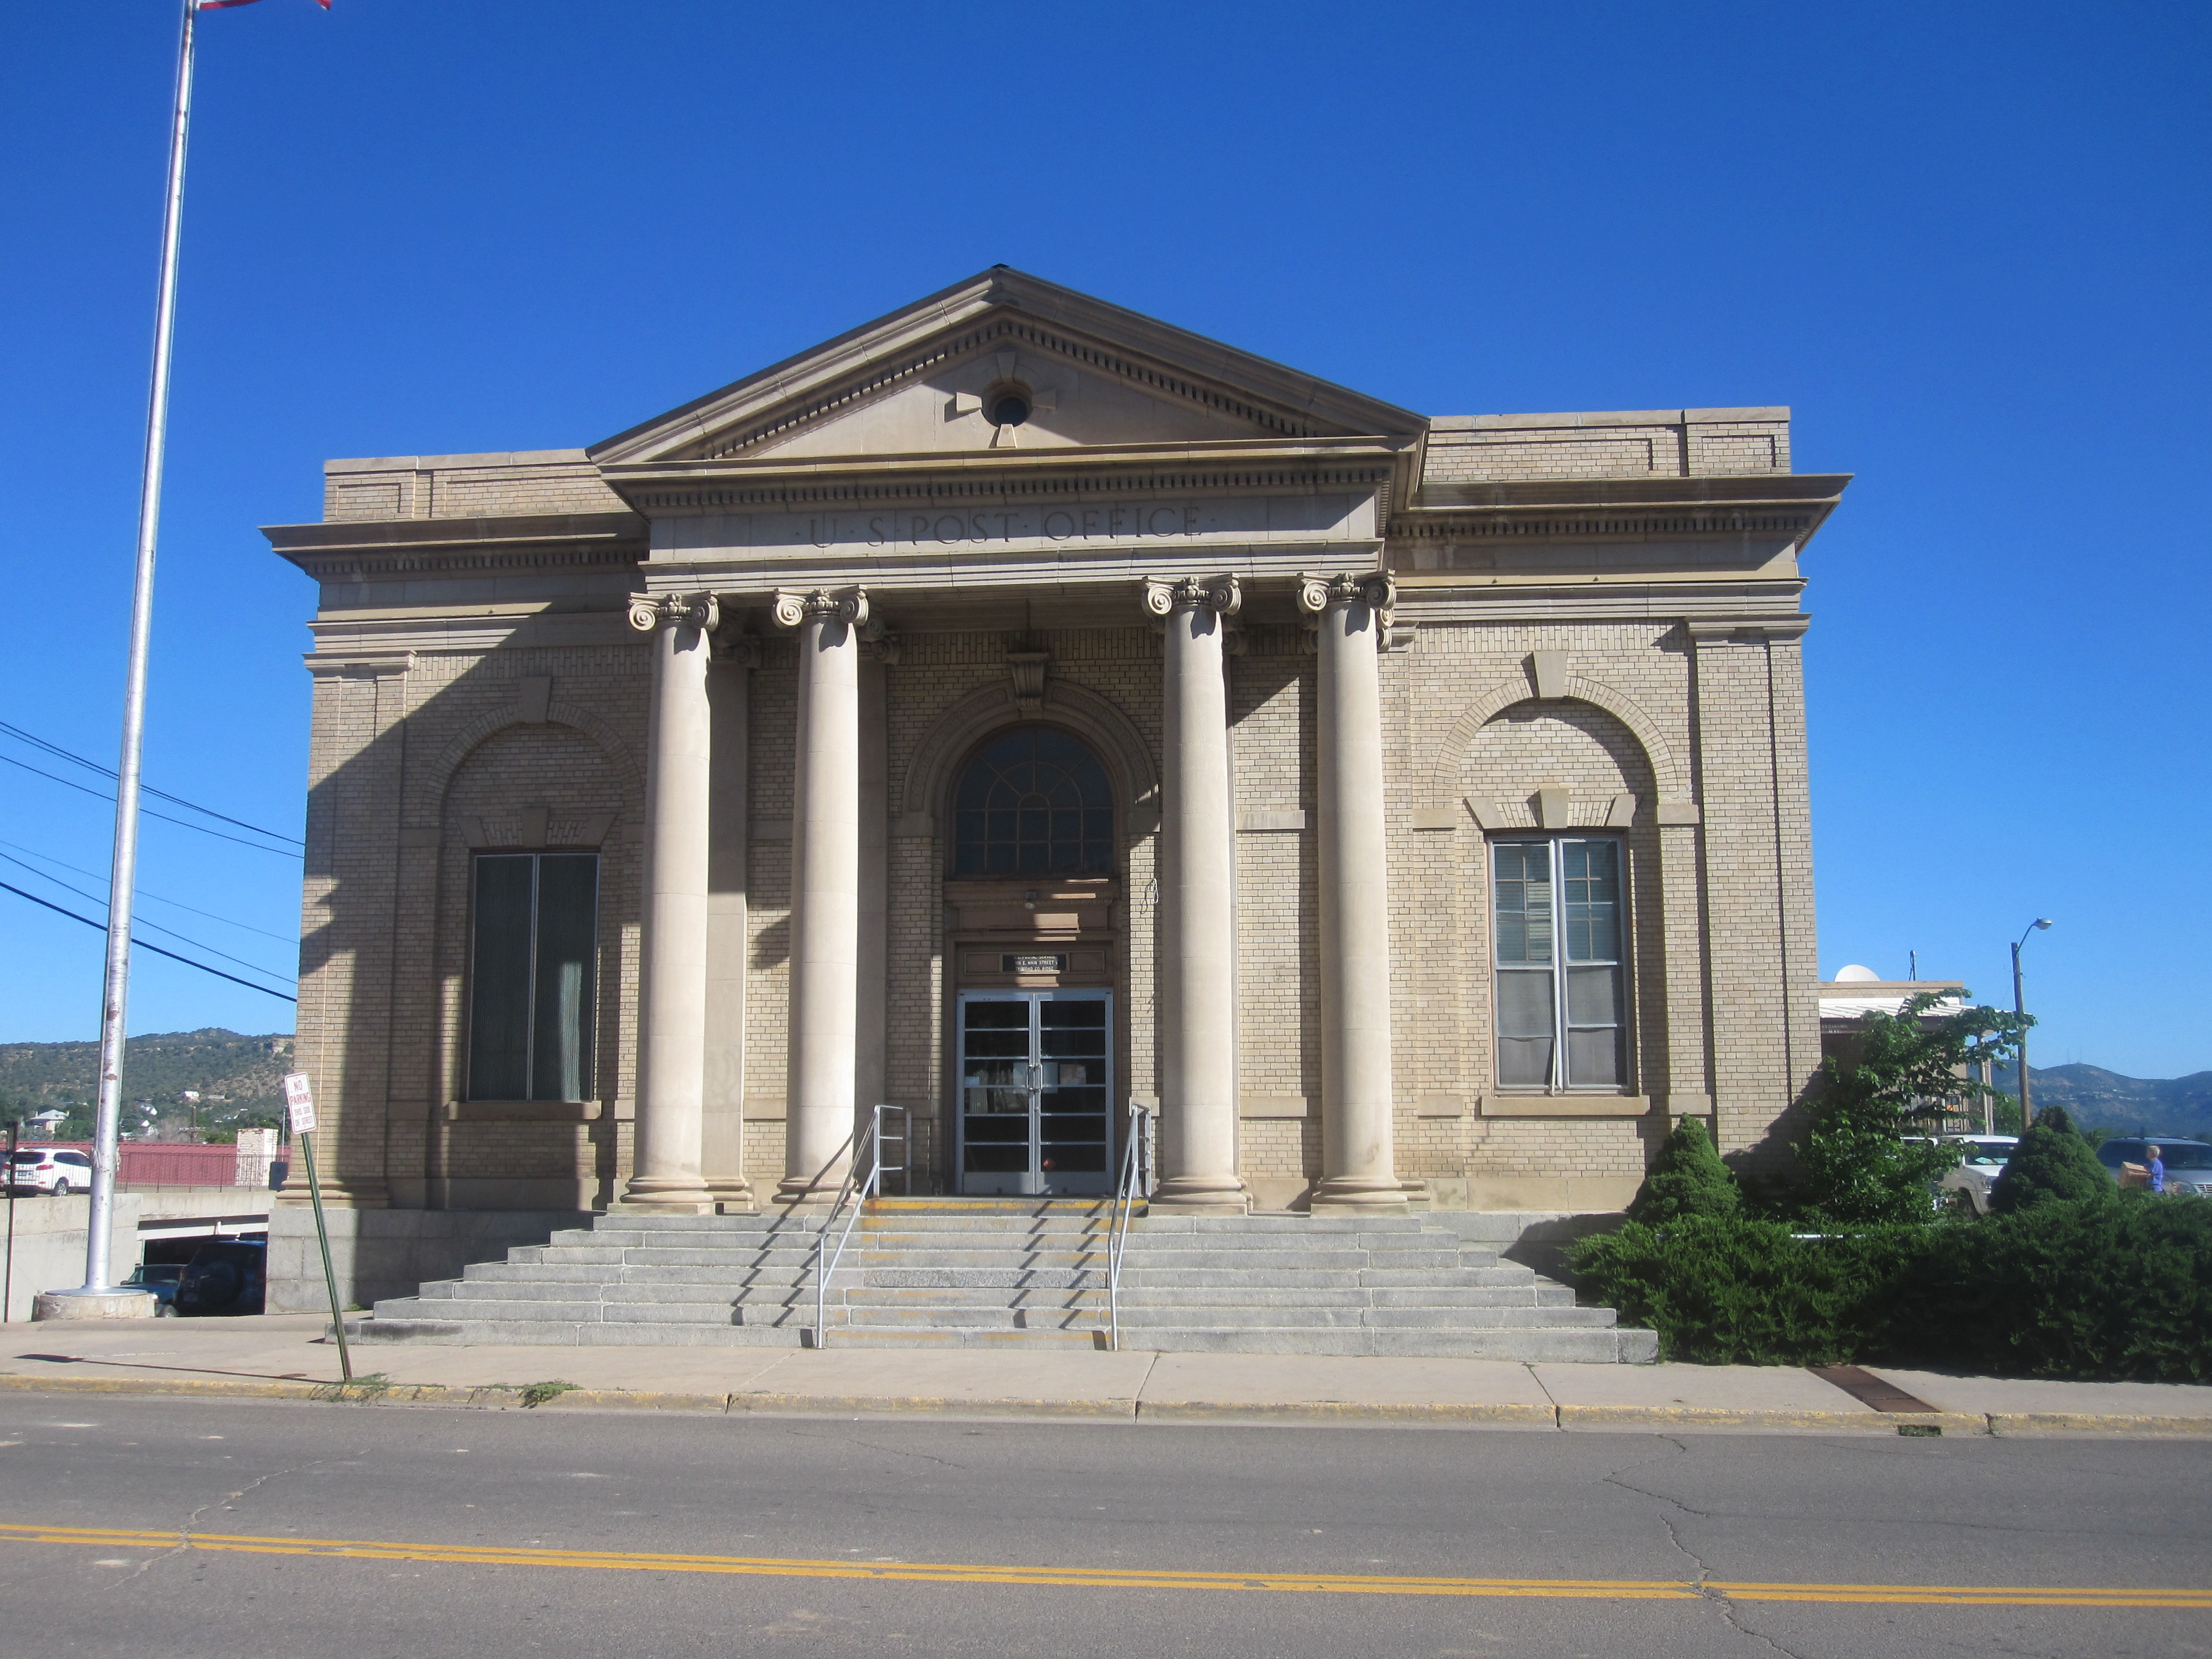 Trinidad (CO) United States  City pictures : U.S. Post Office, Trinidad, CO IMG 5039 Wikipedia, the free ...